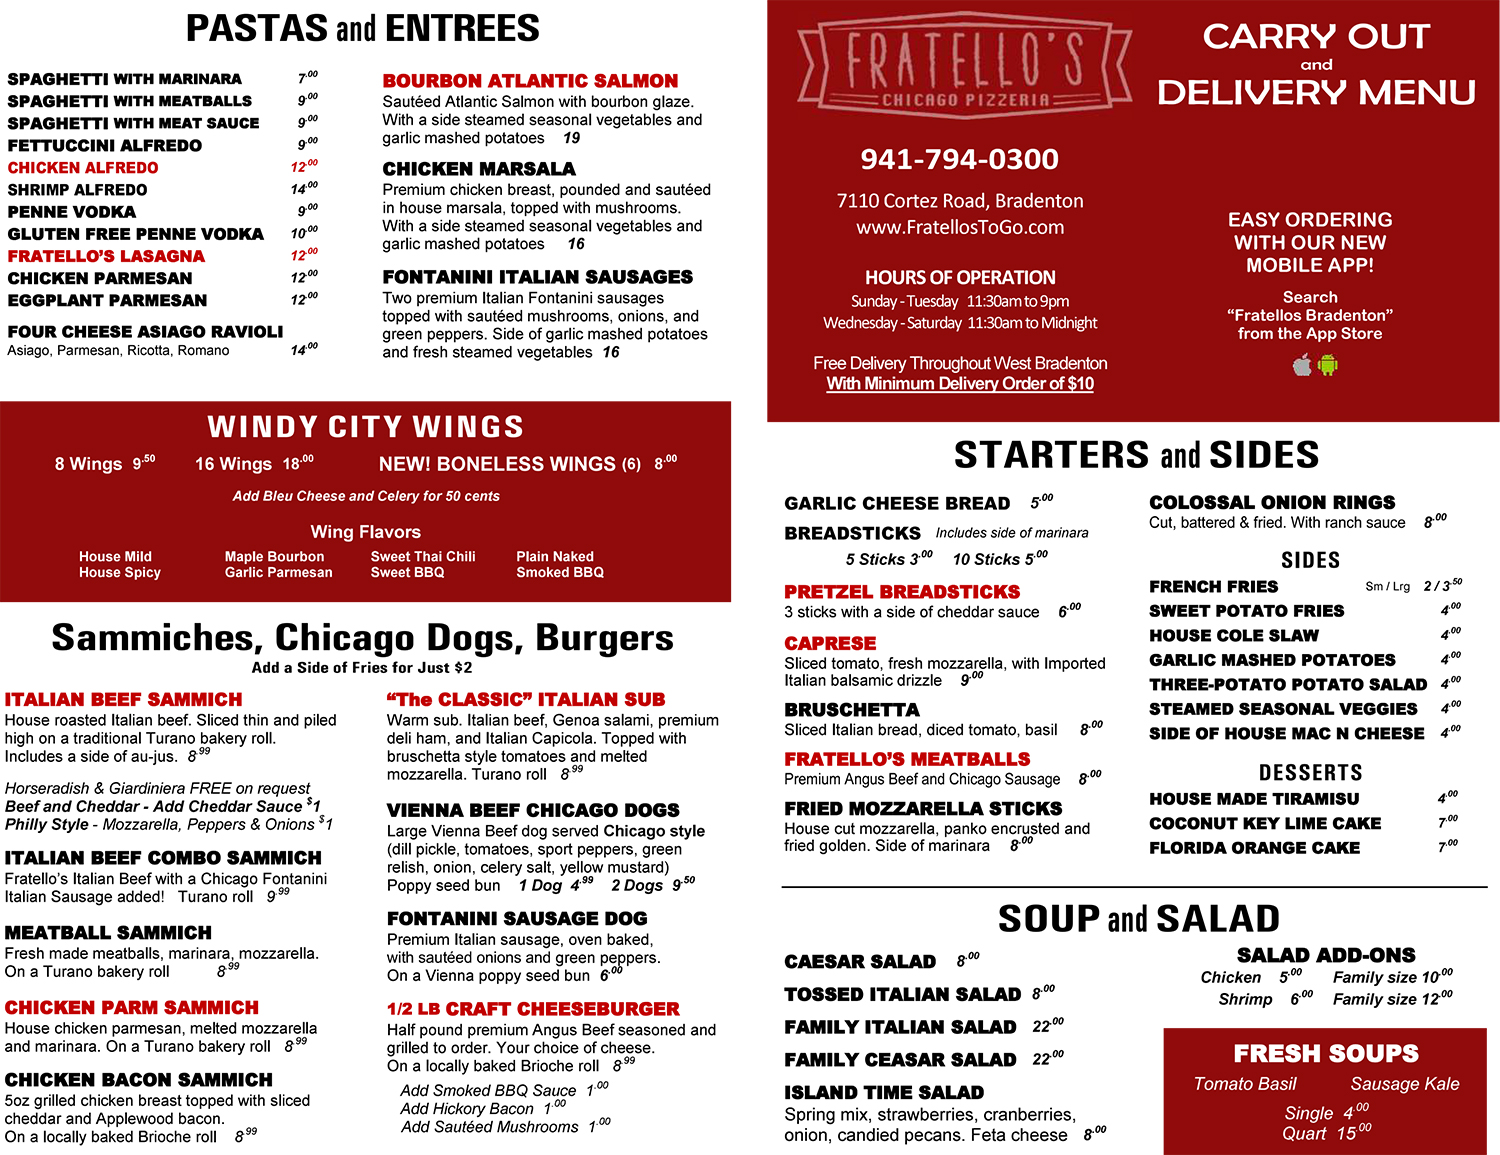 carry out menu page 1.jpg